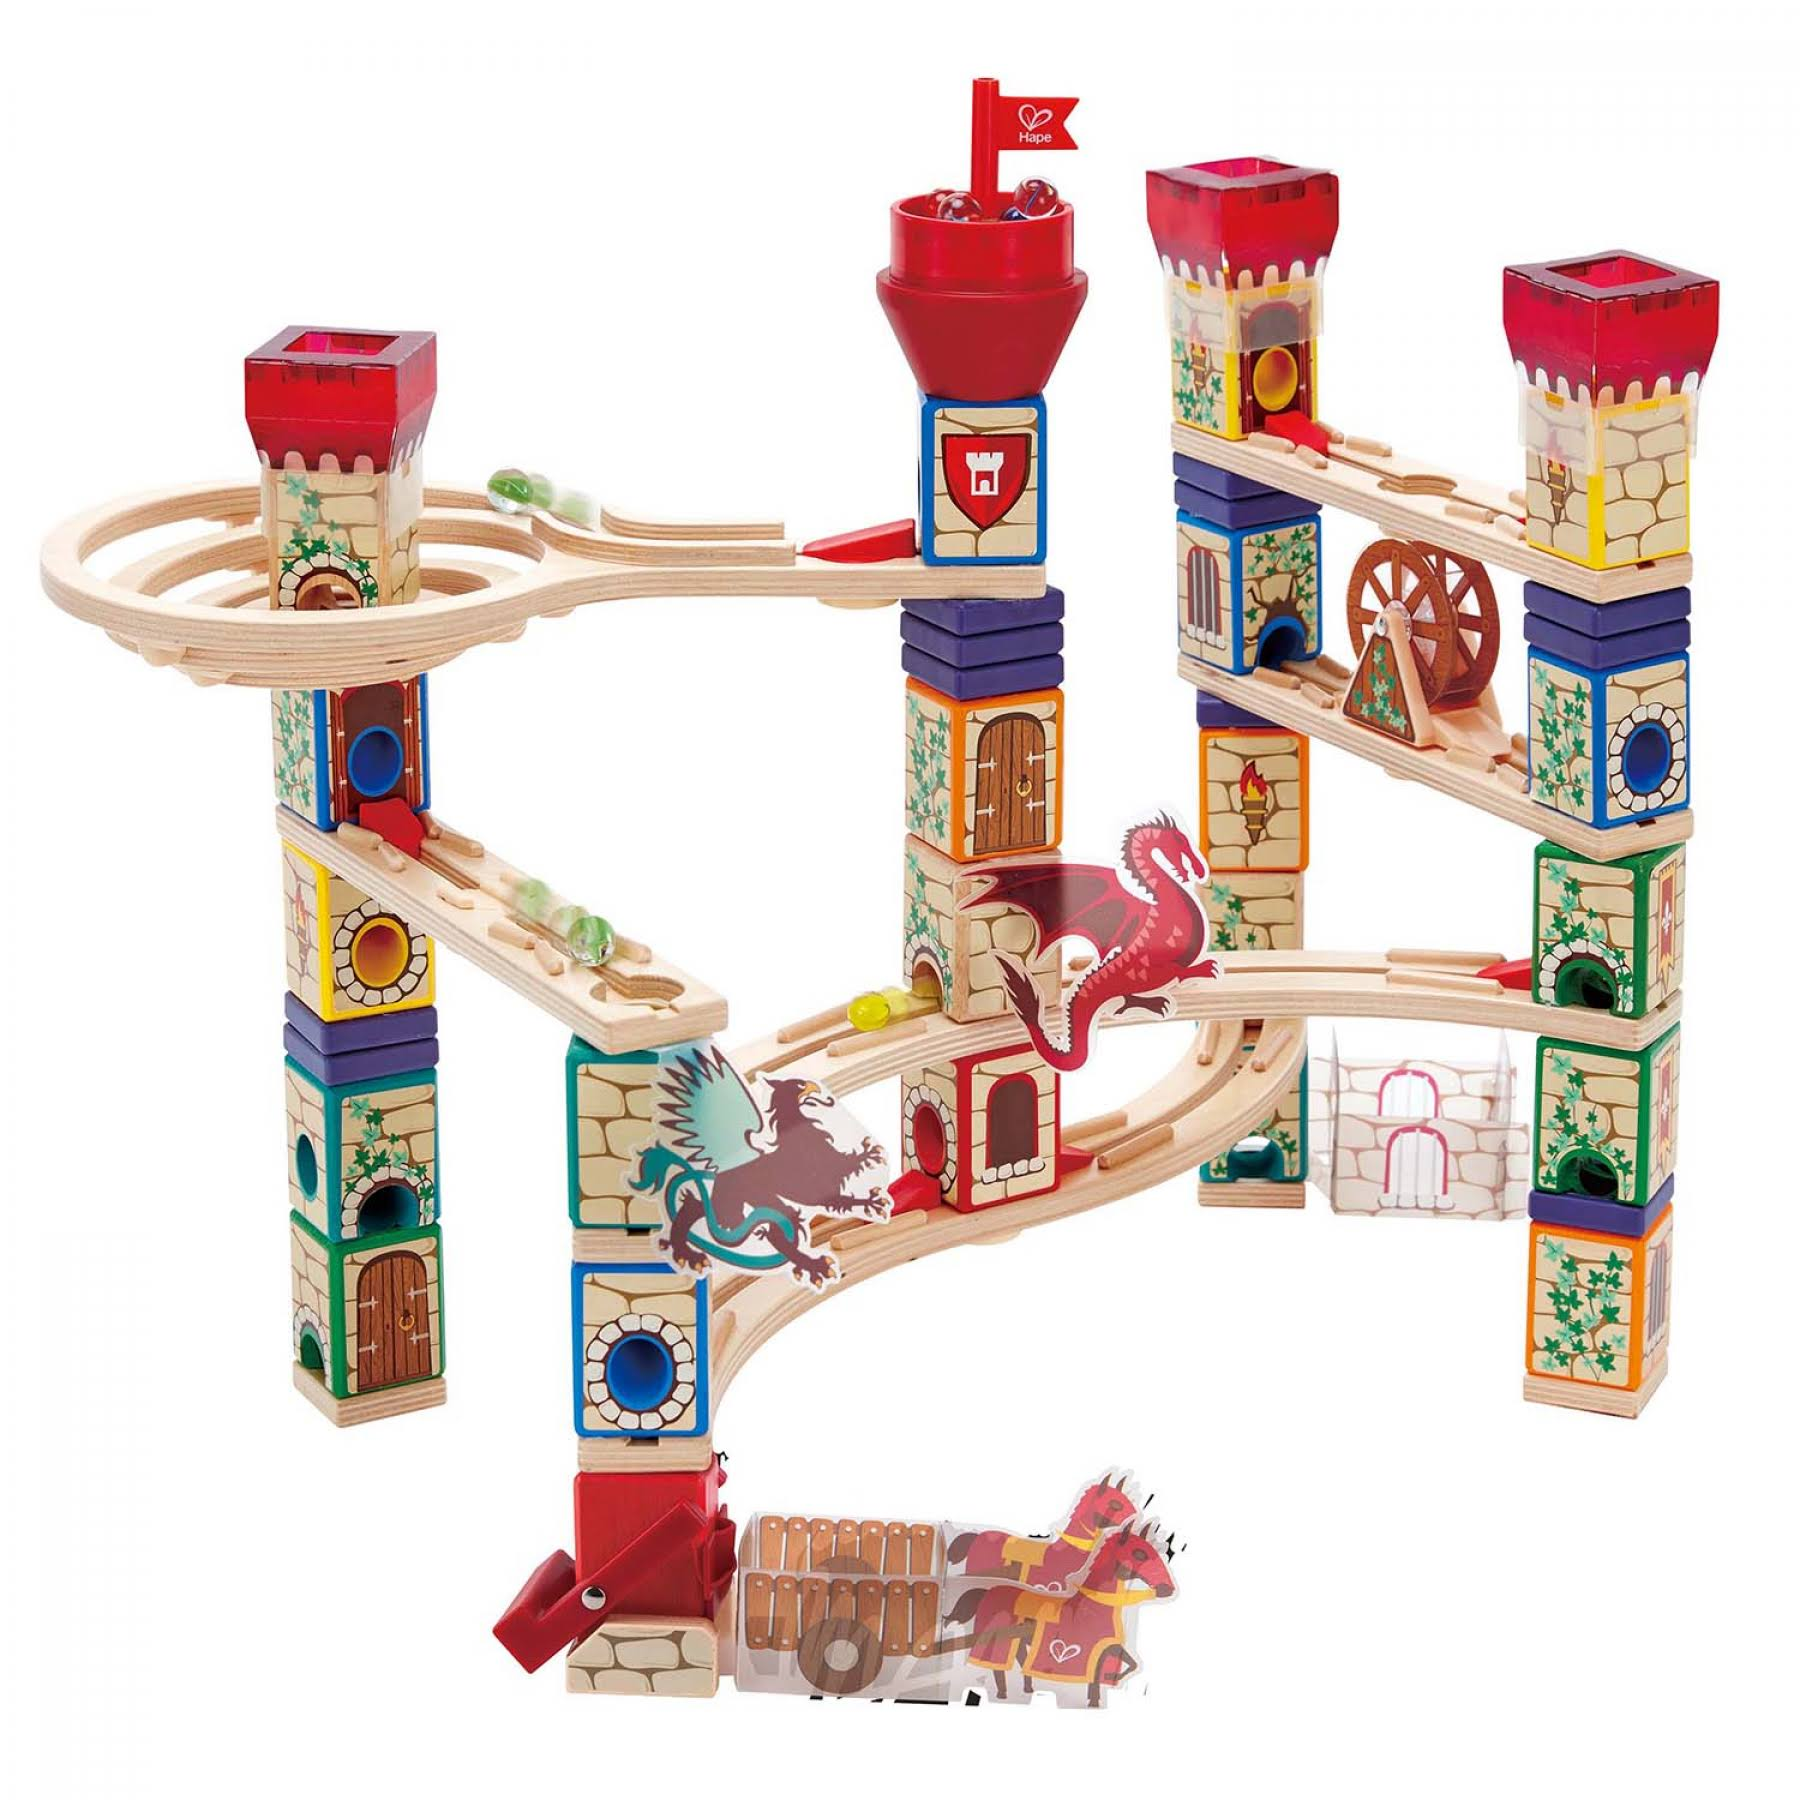 Hape Quadrilla Medieval Quest Wooden Marble Run Building Kit - 217pcs